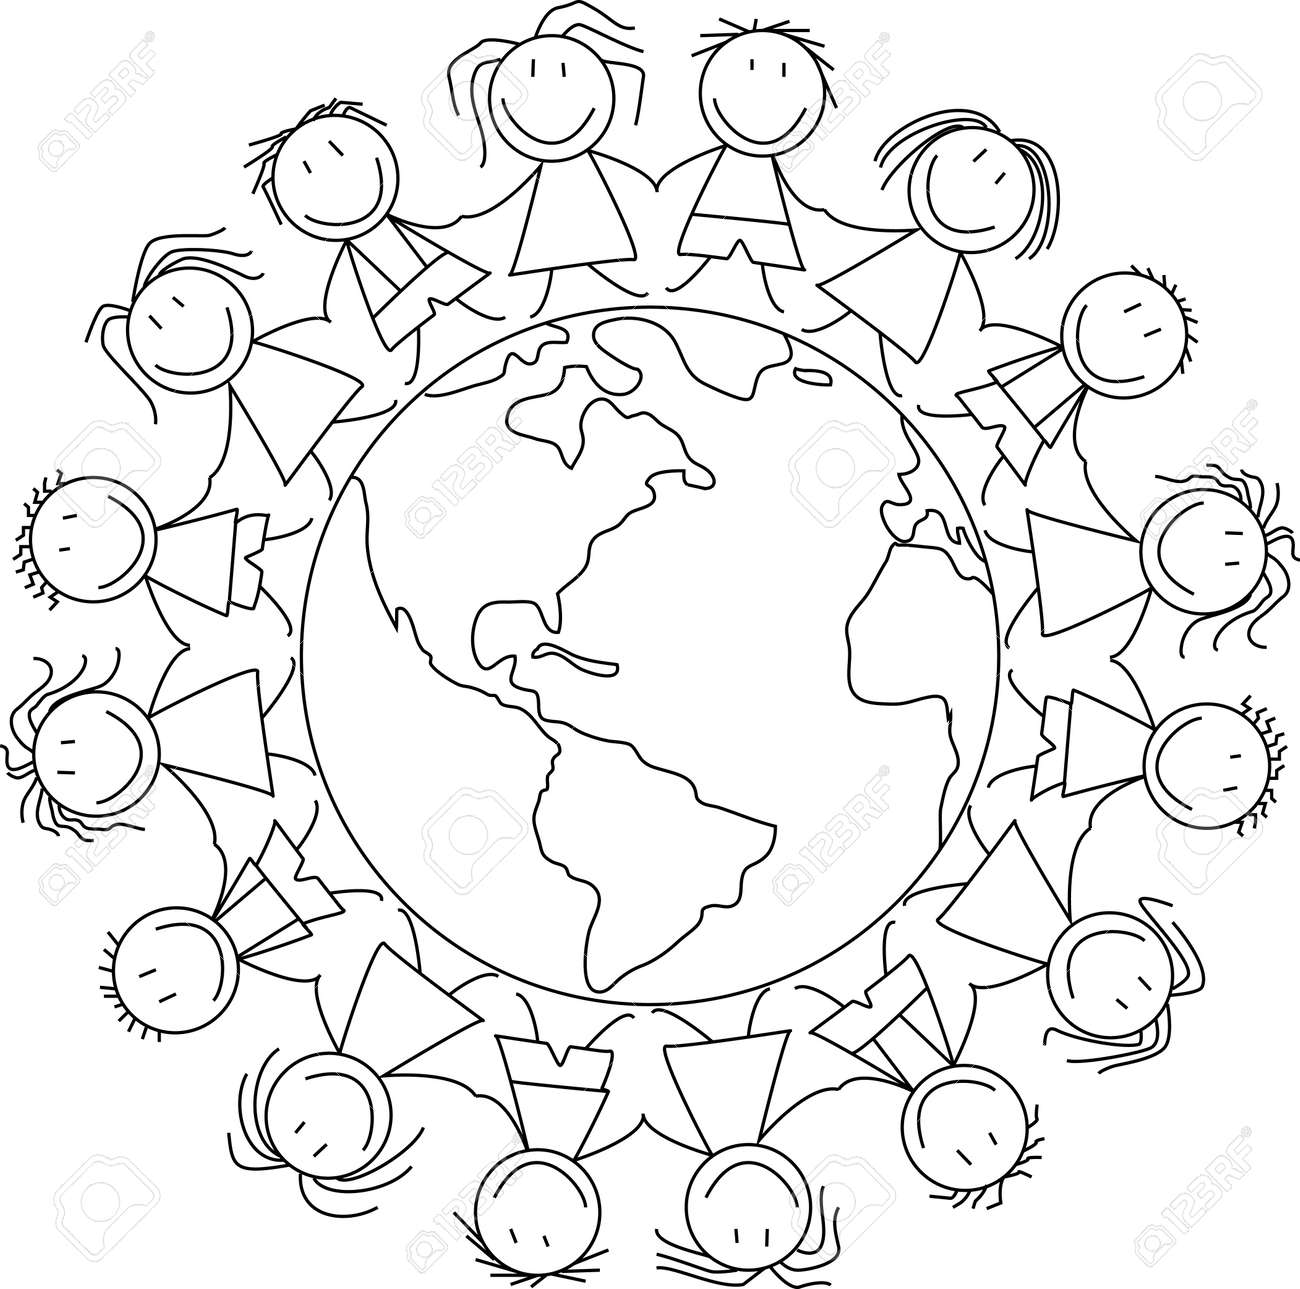 happy children holding hands on world, kids drawing royalty free